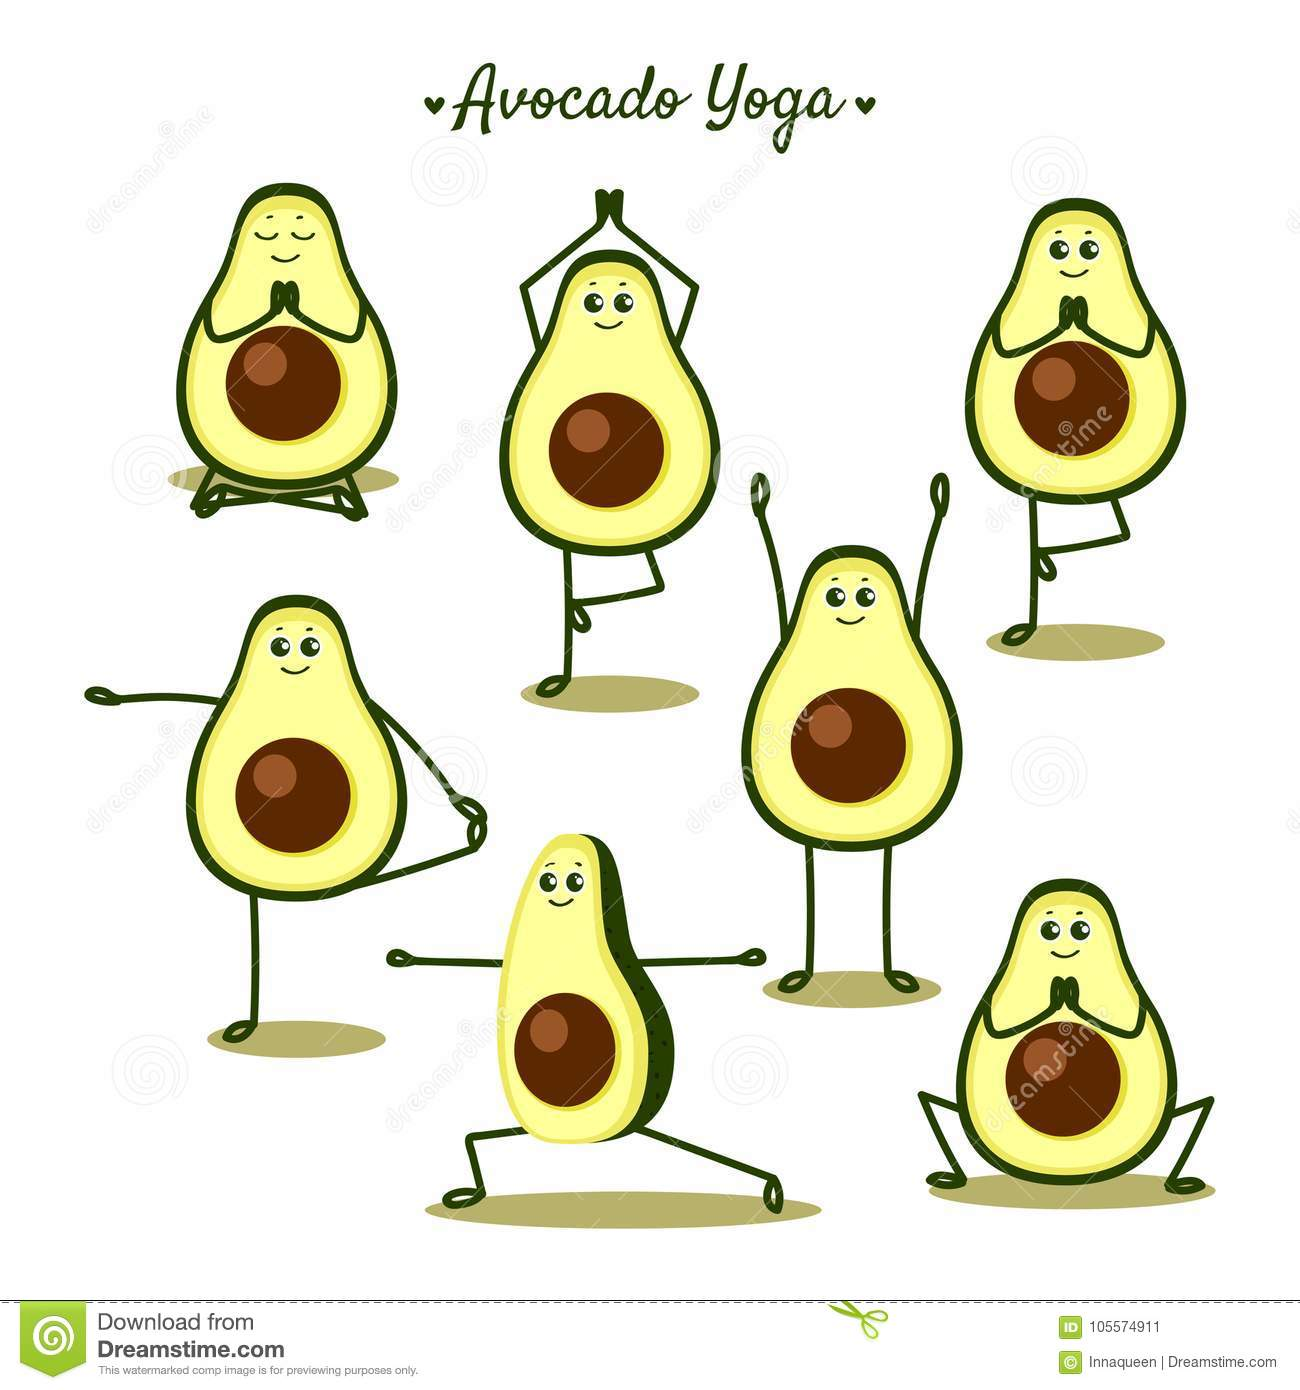 Avocado Yoga Funny Illustration With Poses And Fruits